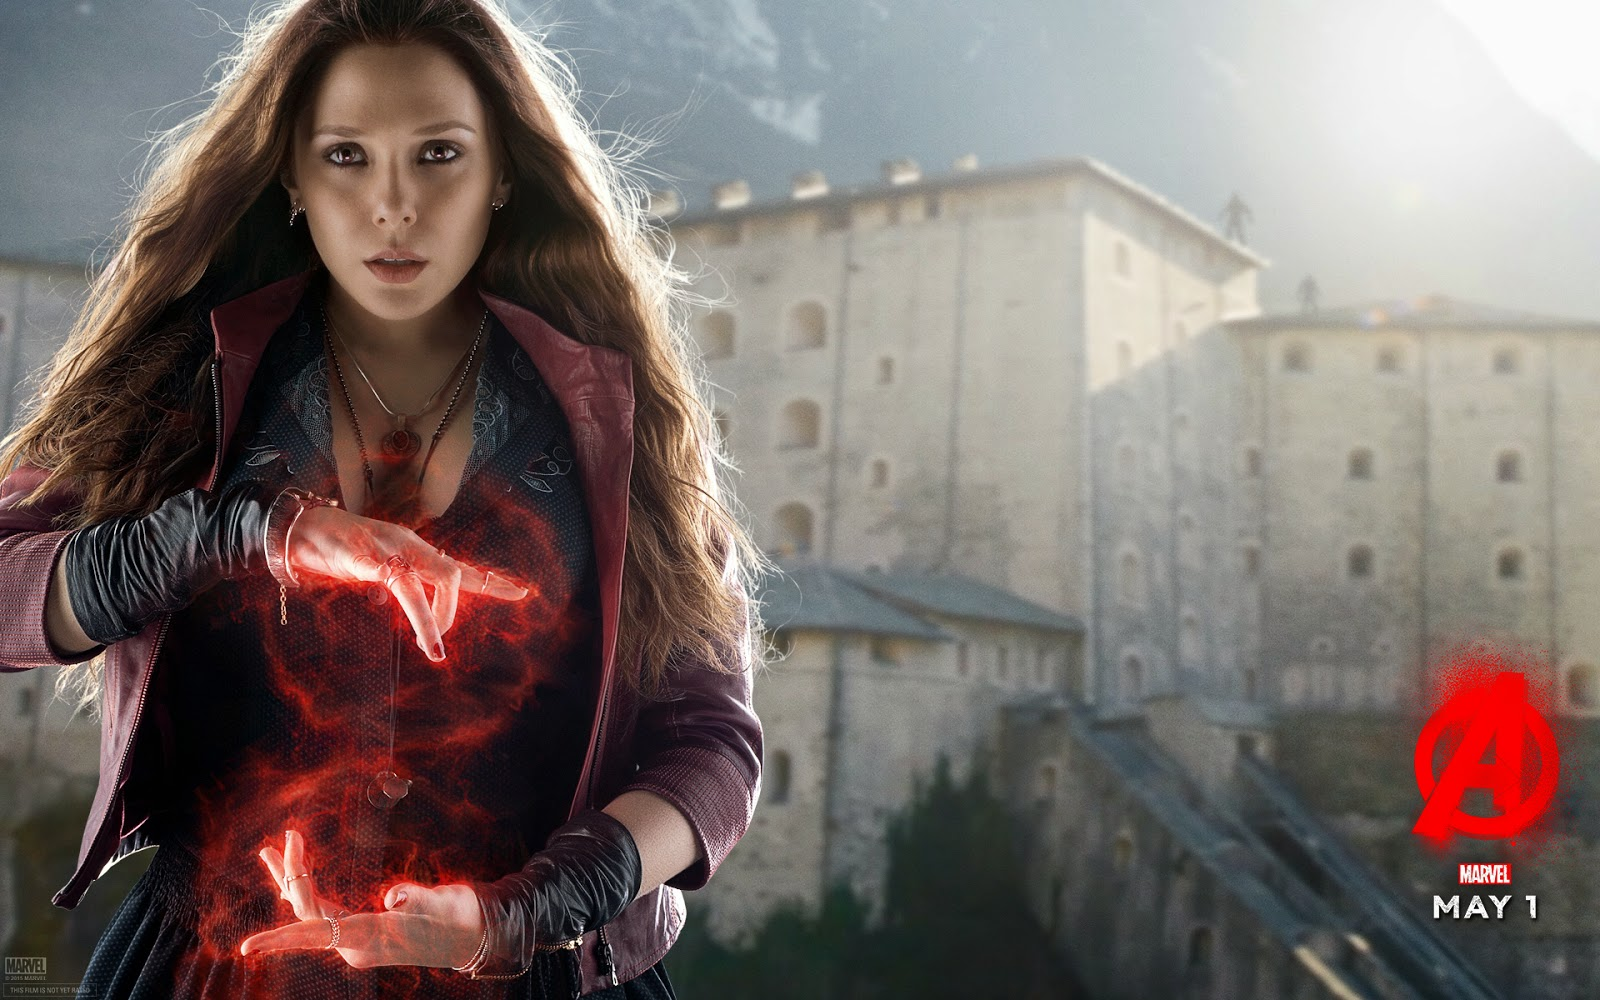 on October 3 2015 By Stephen Comments Off on Scarlet Witch Wallpaper 1600x1000